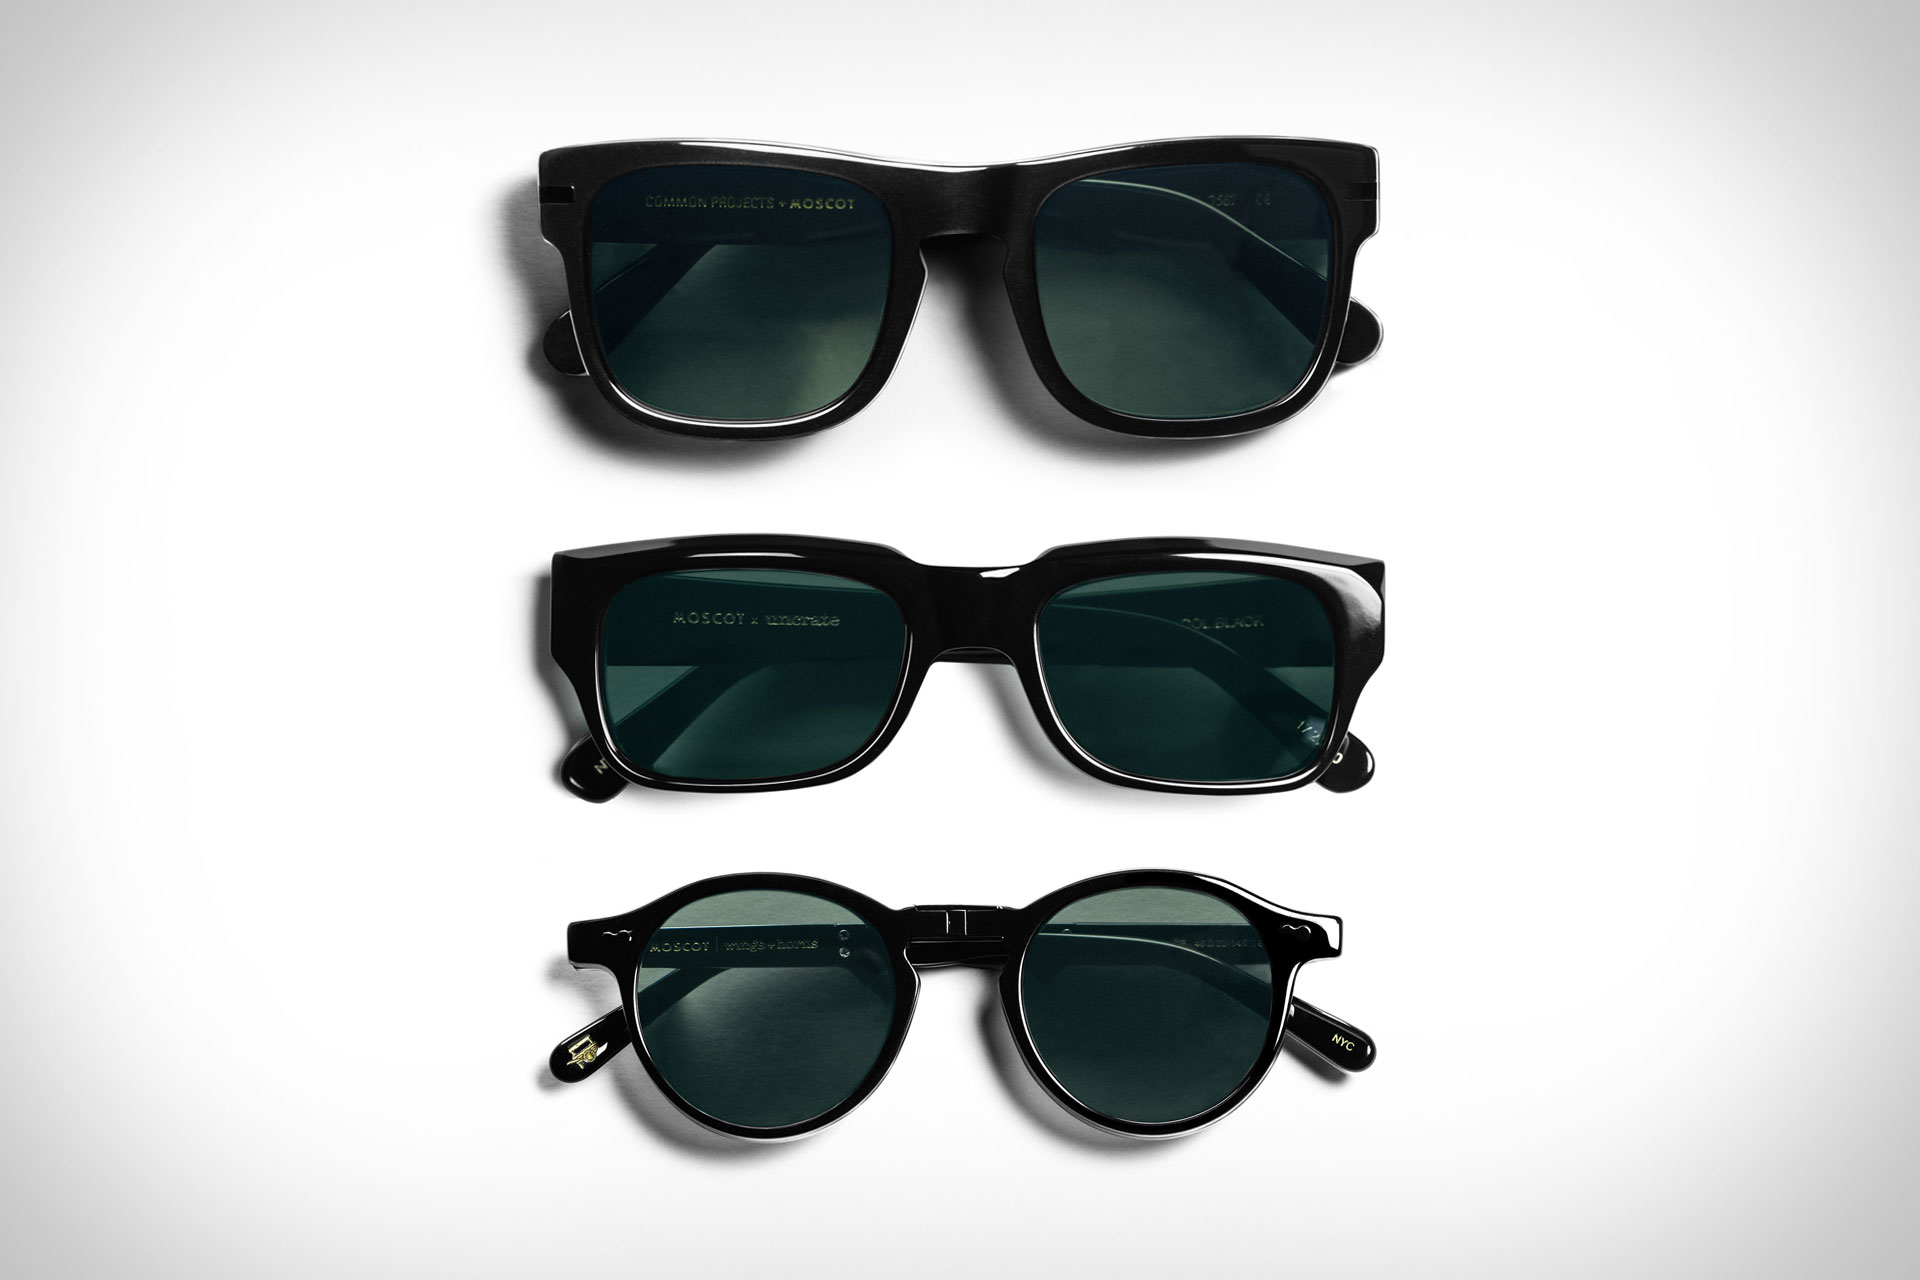 795cac4cc9 Moscot Collaboration Sunglasses